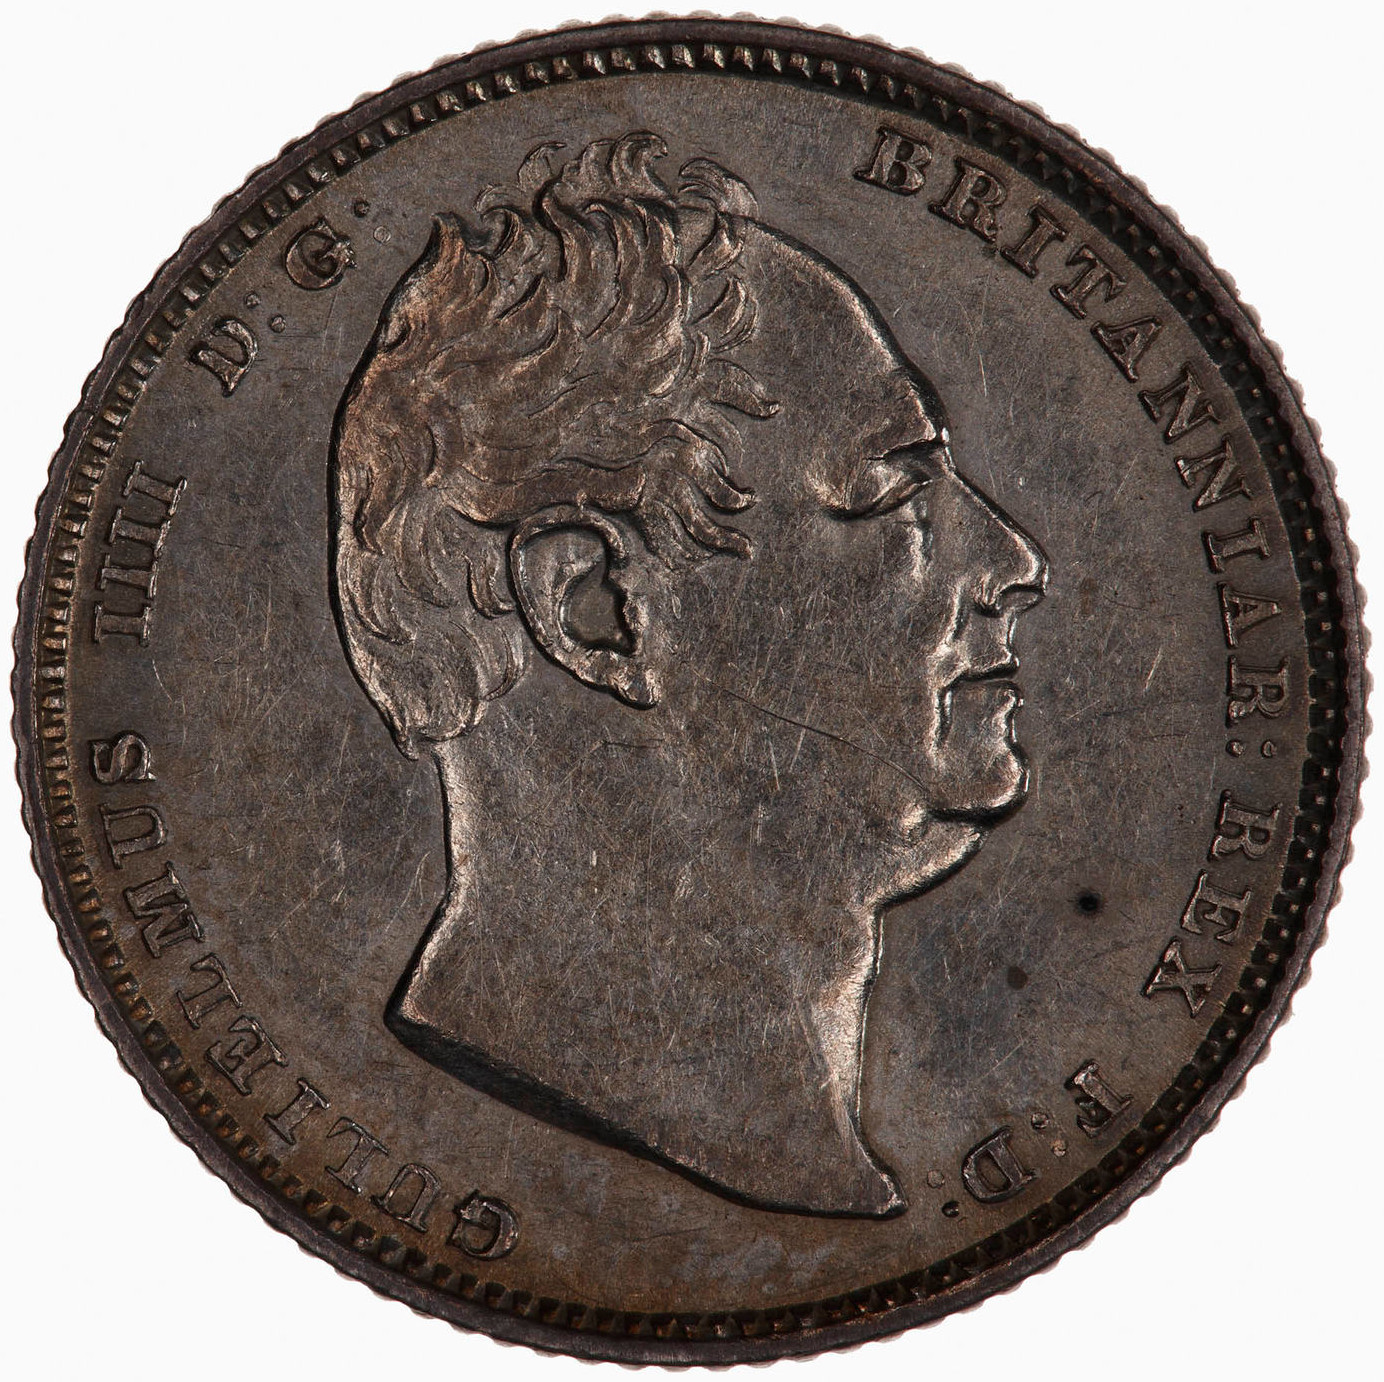 Sixpence 1834: Photo Coin - Sixpence, William IV, Great Britain, 1834